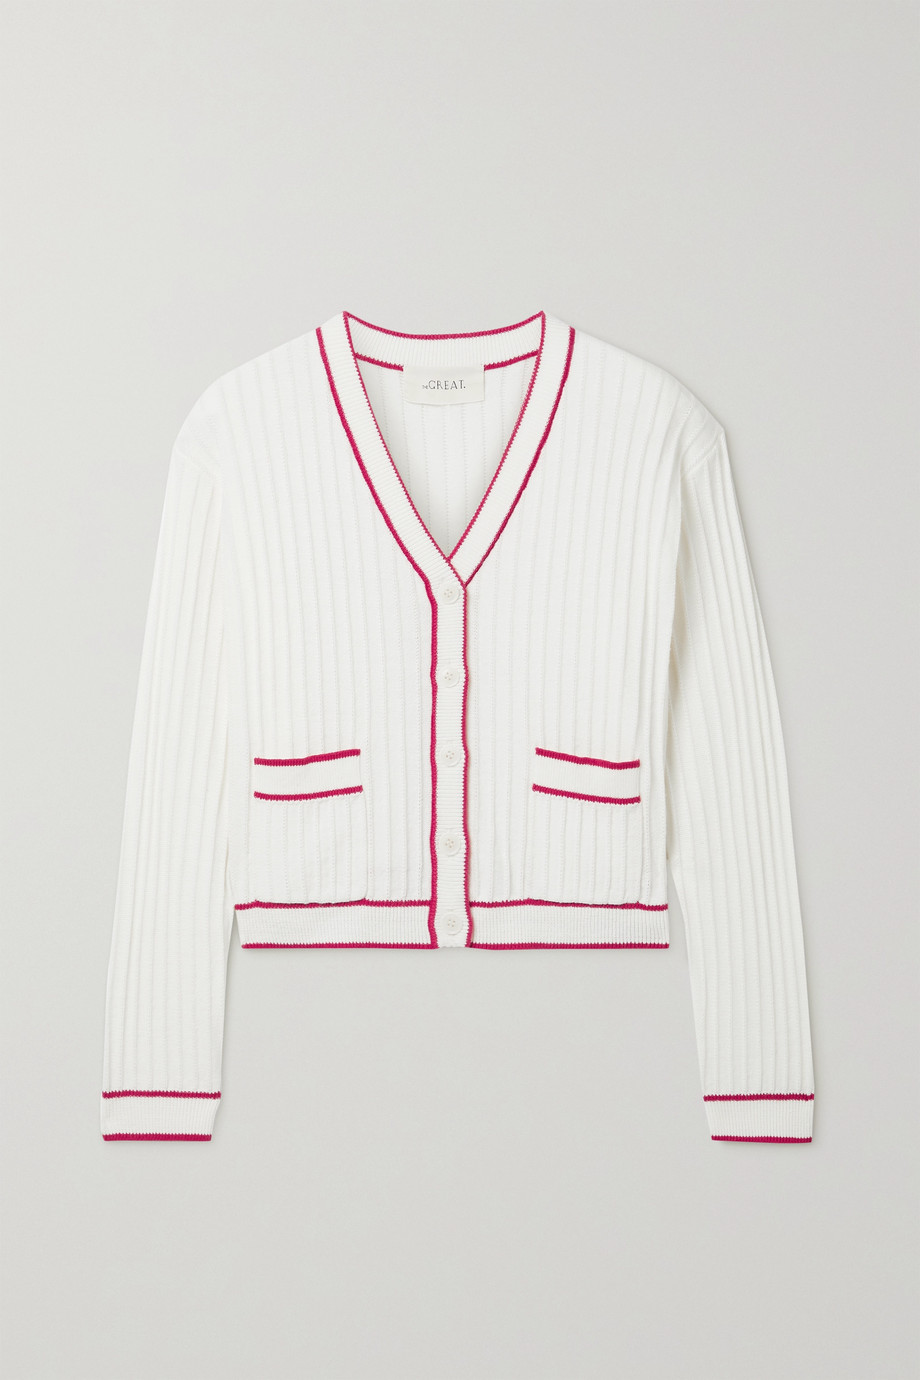 The Great The Athletic ribbed cotton-blend cardigan